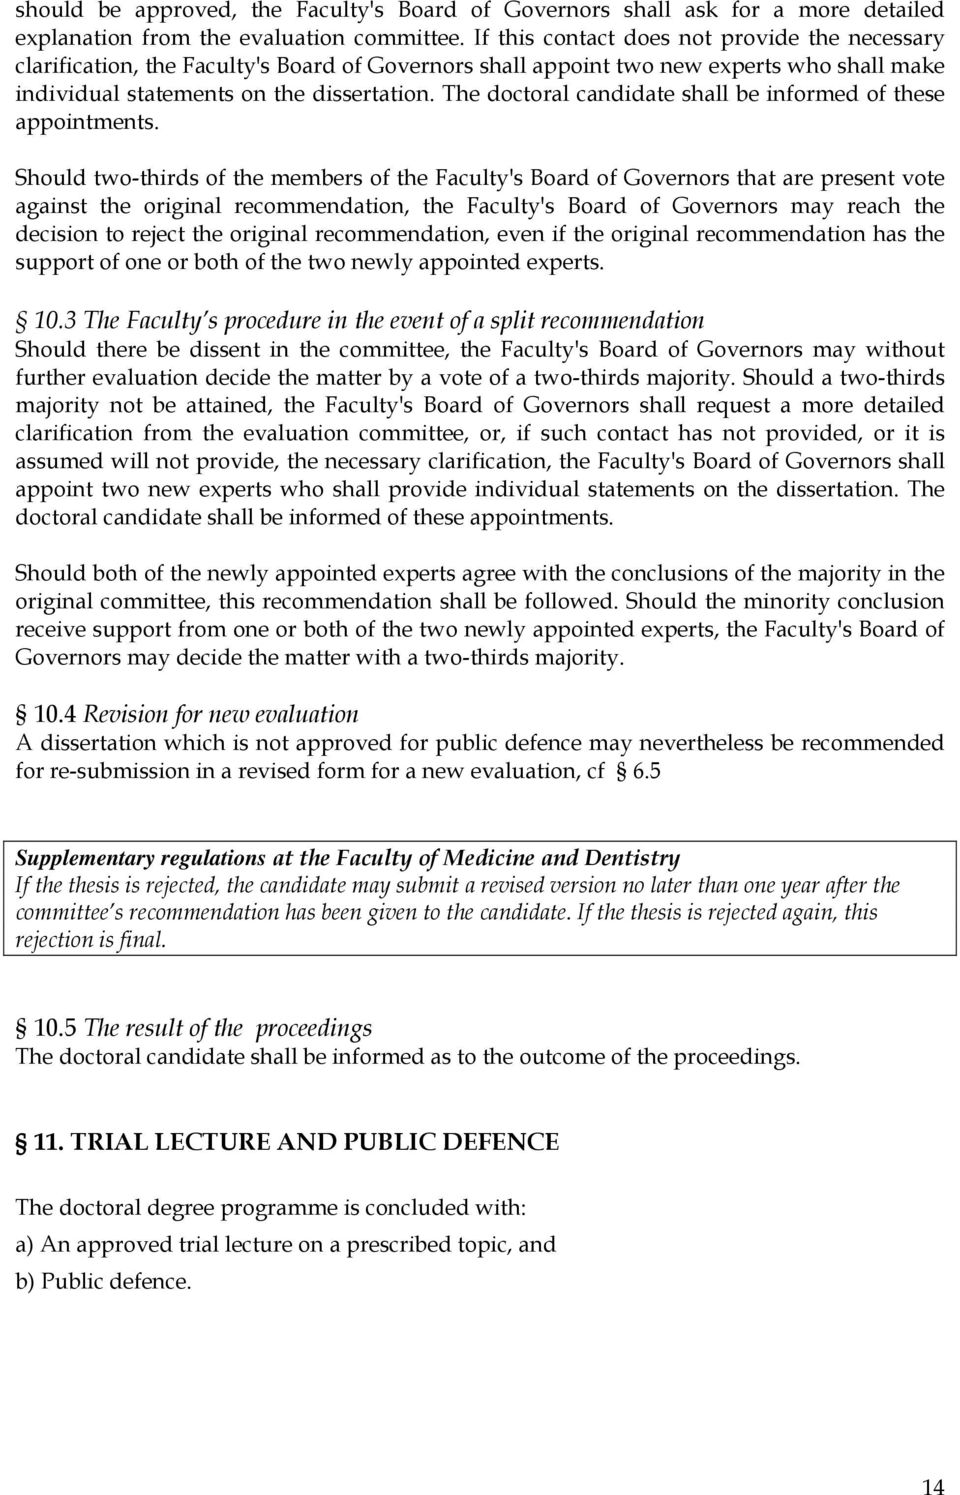 The doctoral candidate shall be informed of these appointments.